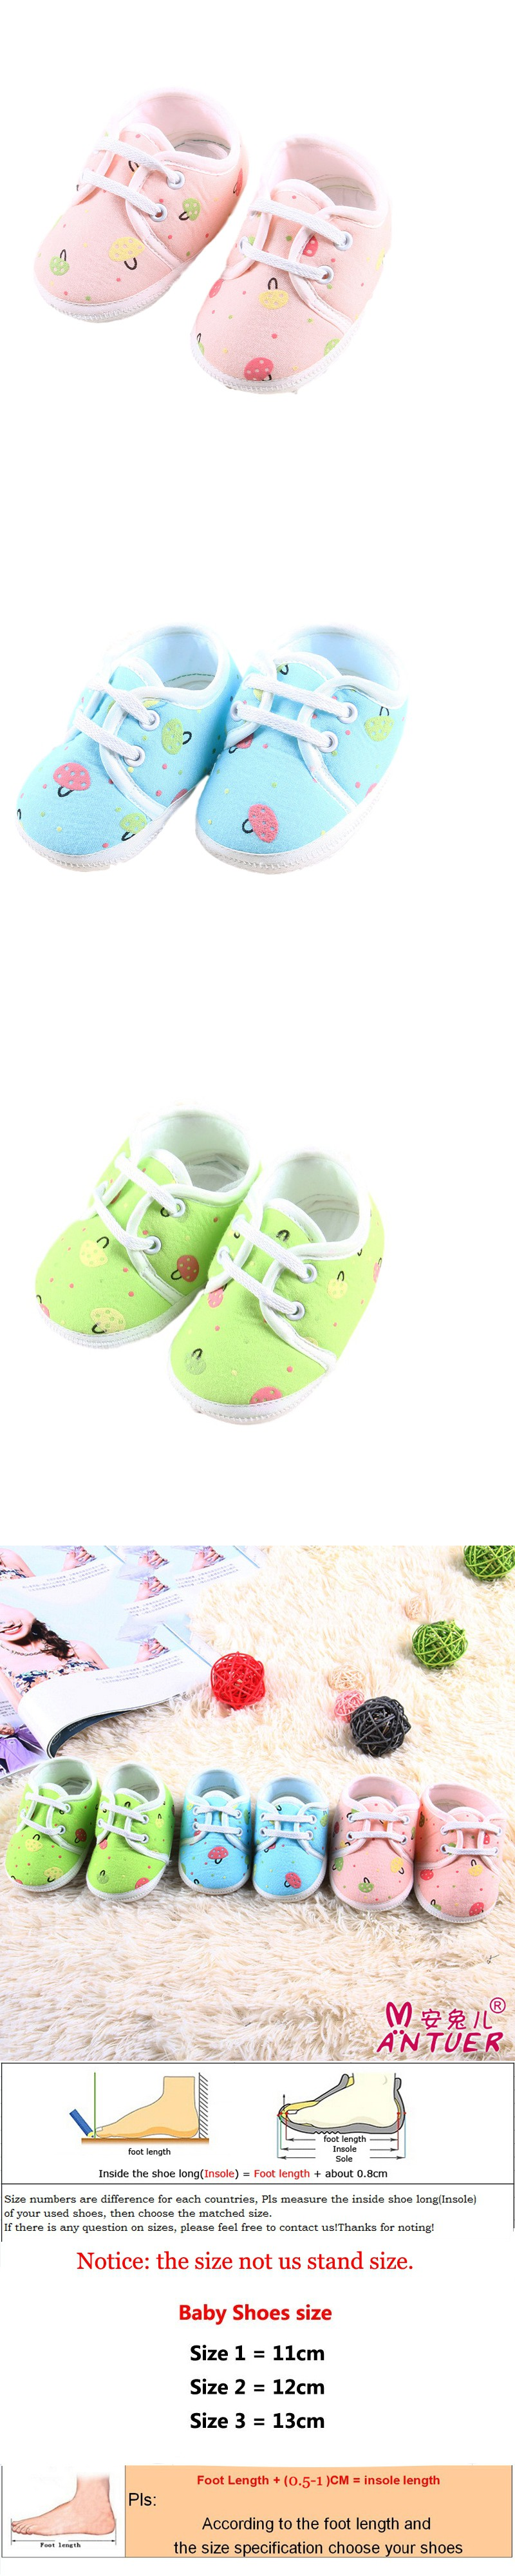 What Is Size 3 For Baby Shoes – Shoes Gallery